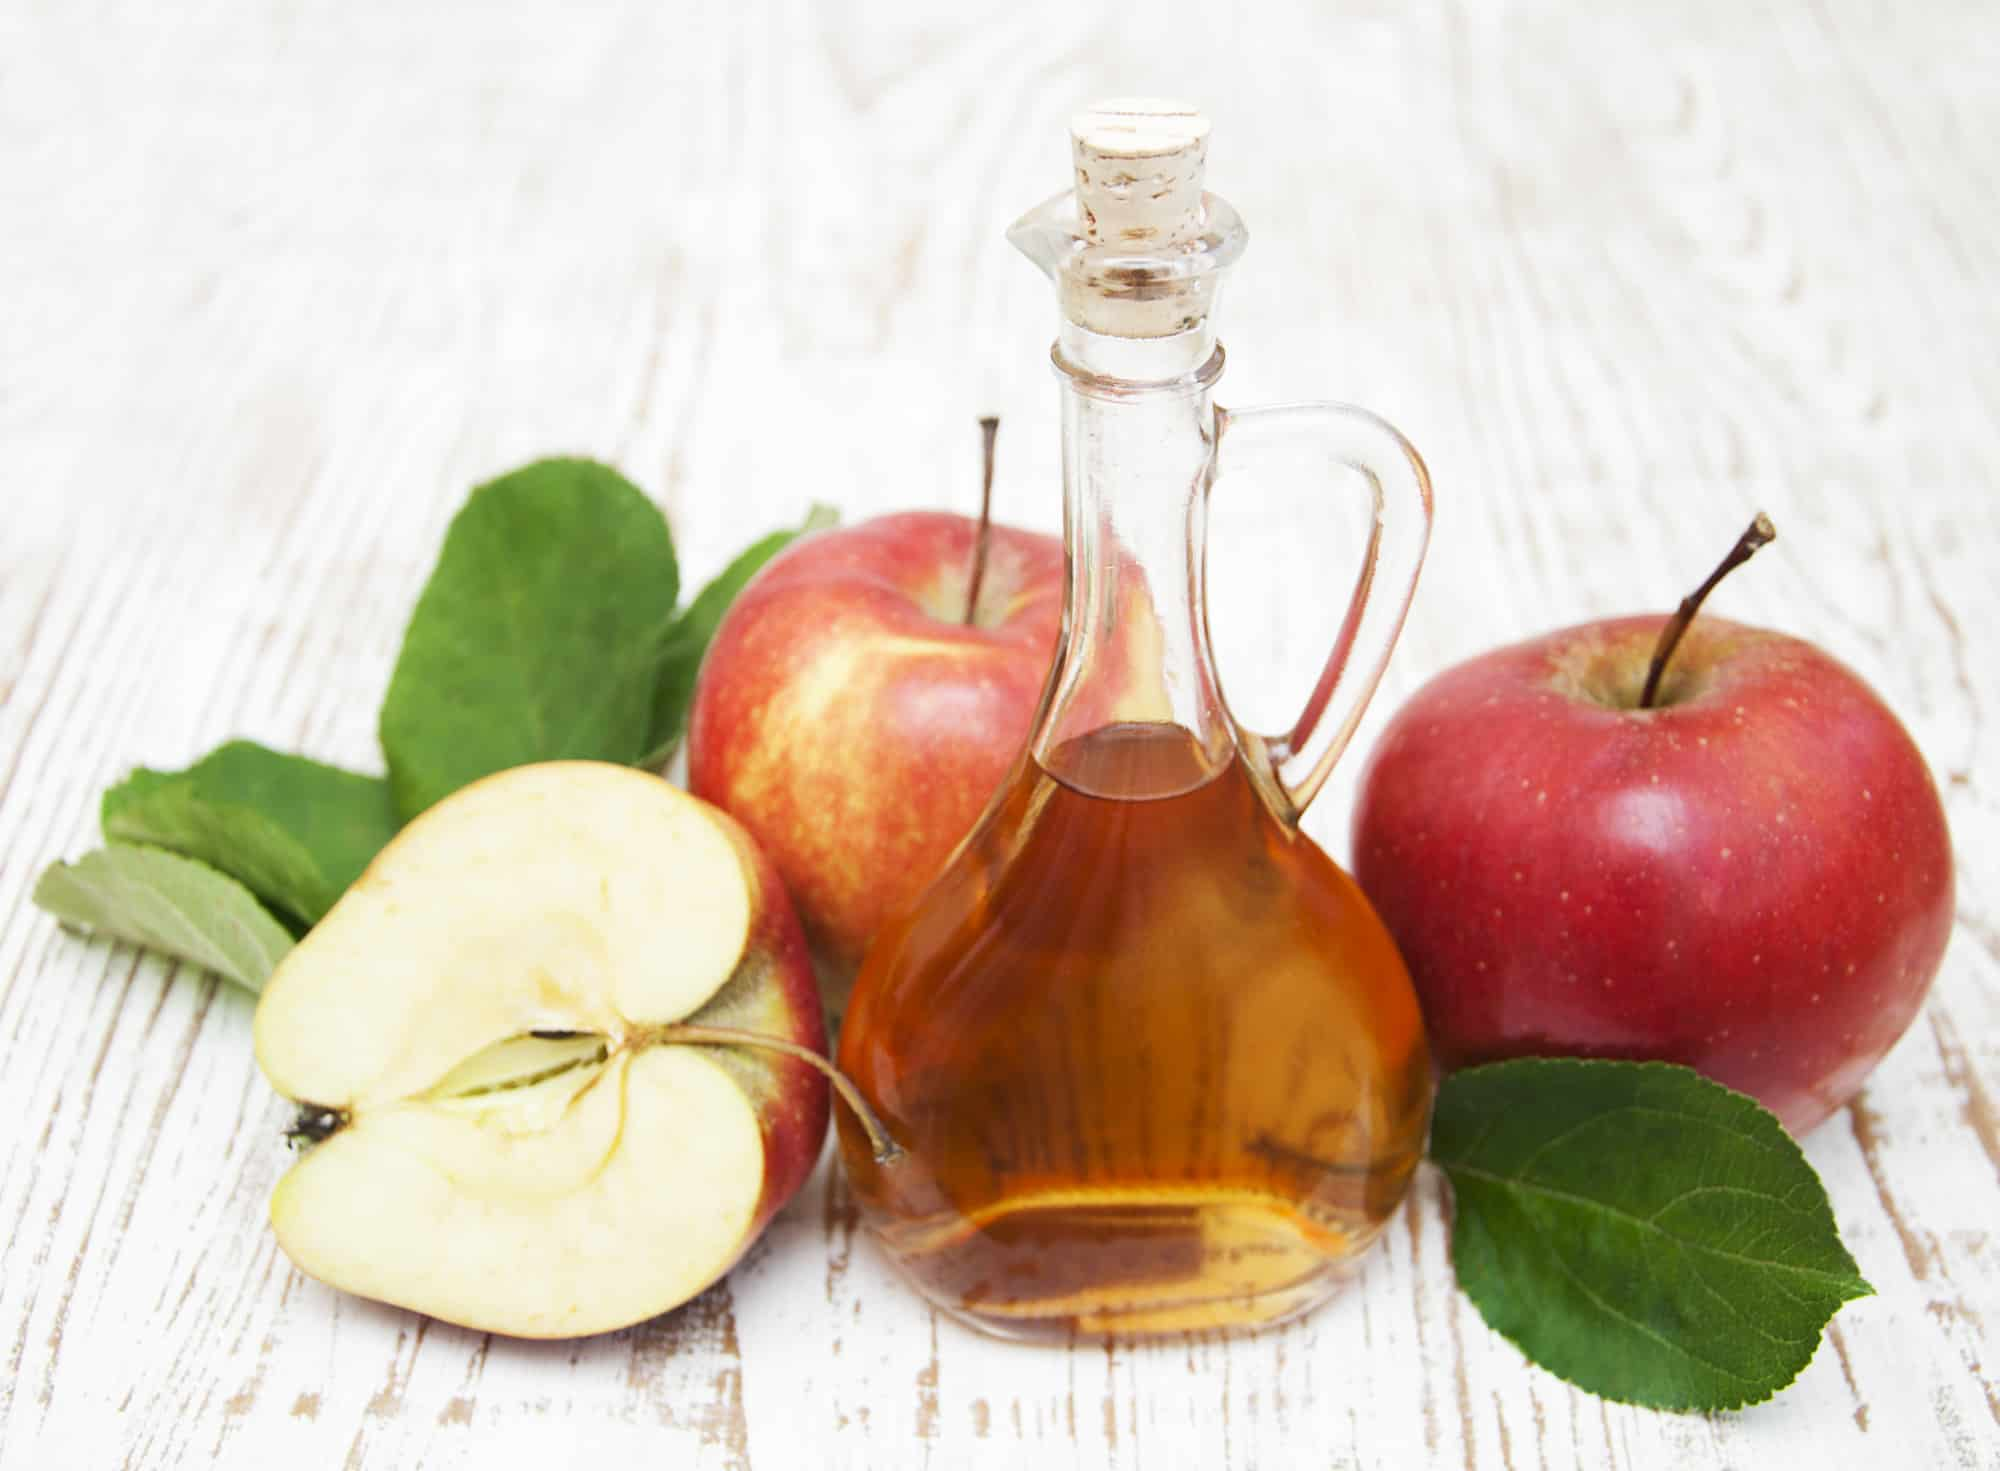 Apple cider vinegar and fresh apple